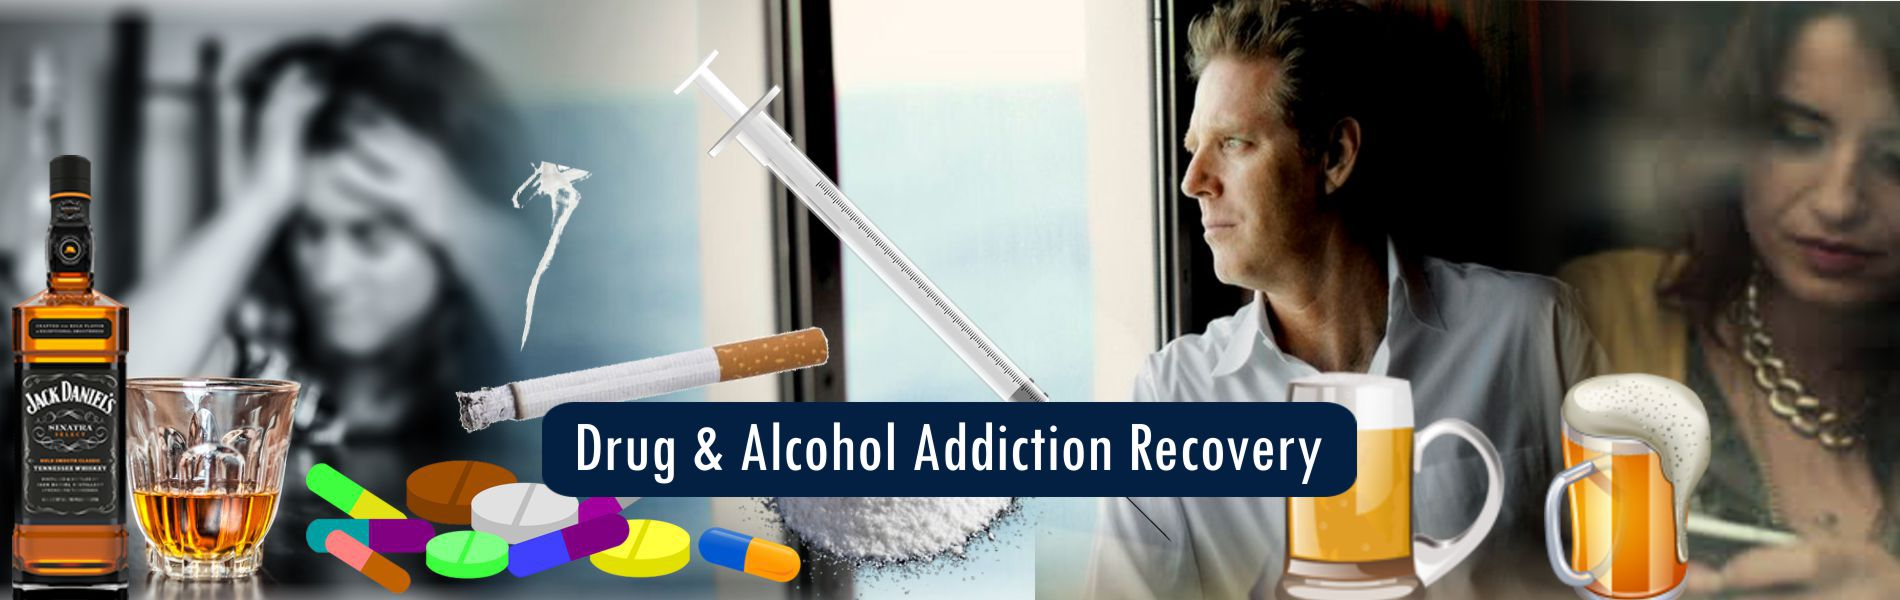 Slider 1 Drug & Alcohol Recovery